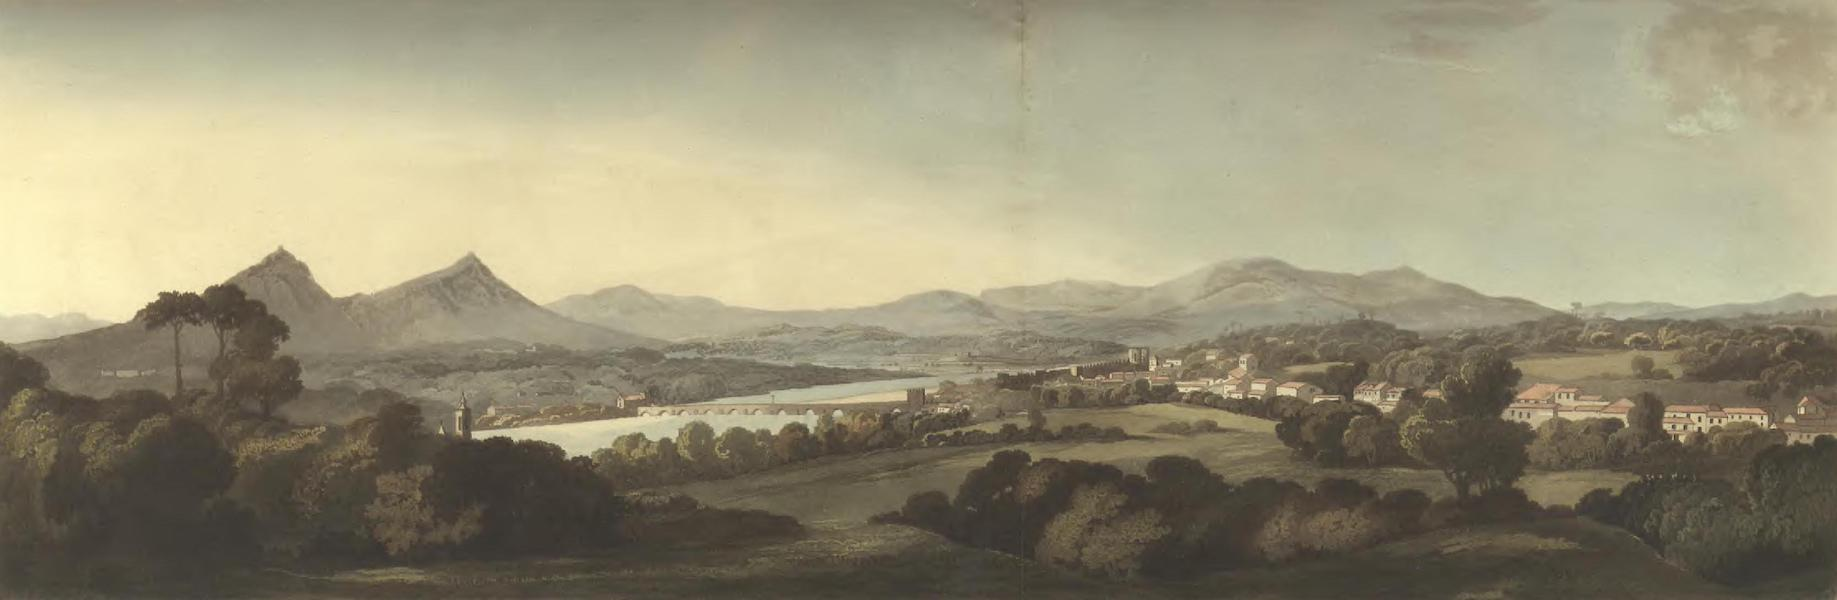 Historical, Military, and Picturesque Observations on Portugal Vol. 2 - Fountain opposite the Inn at Ponte de Lima, Entre Douro-e-Minho (1818)